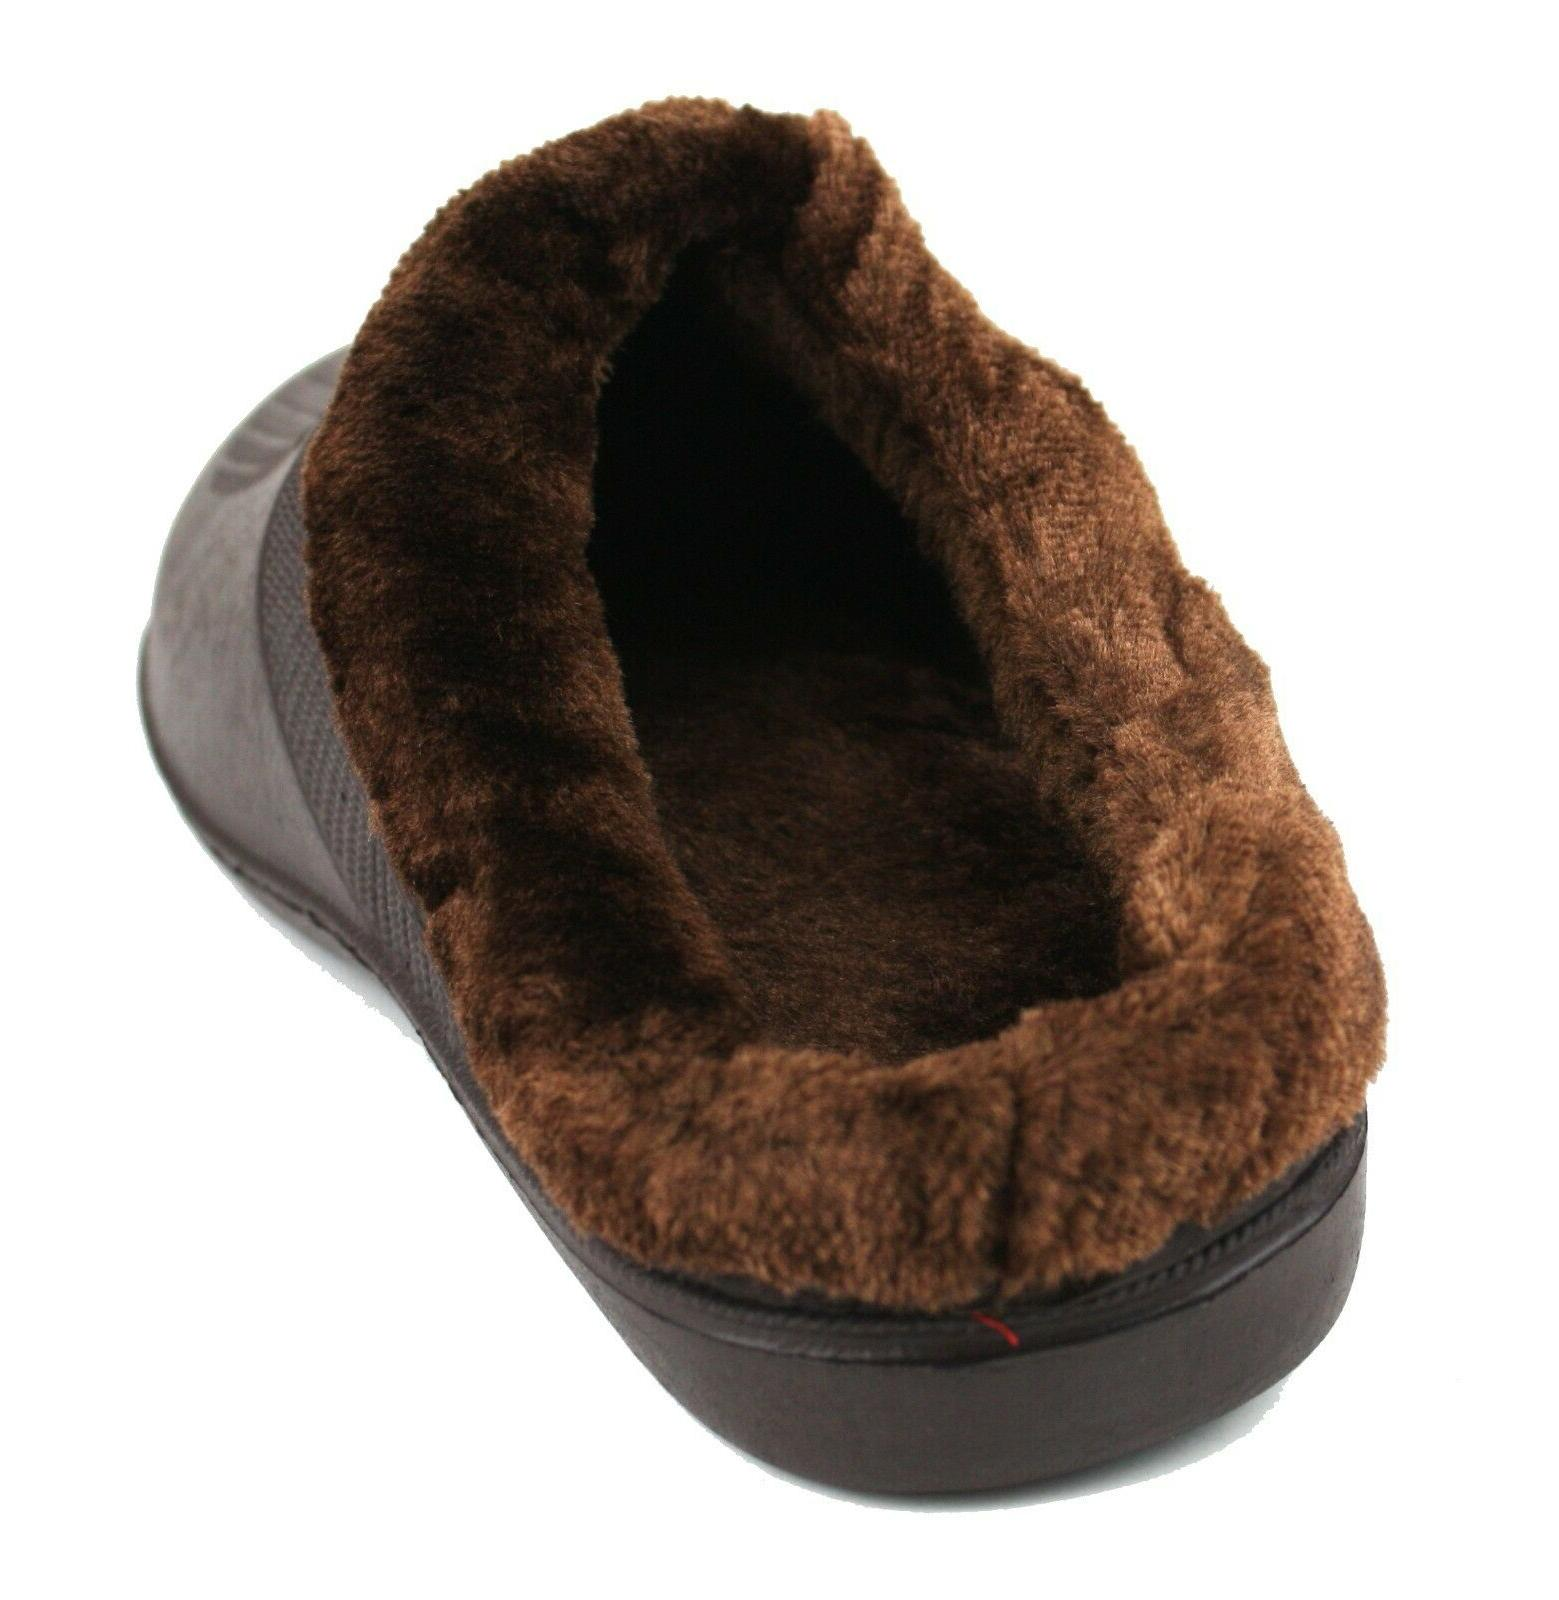 Mens Slippers Shoes Fleece Lined Rubber House Outdoor Non Slip